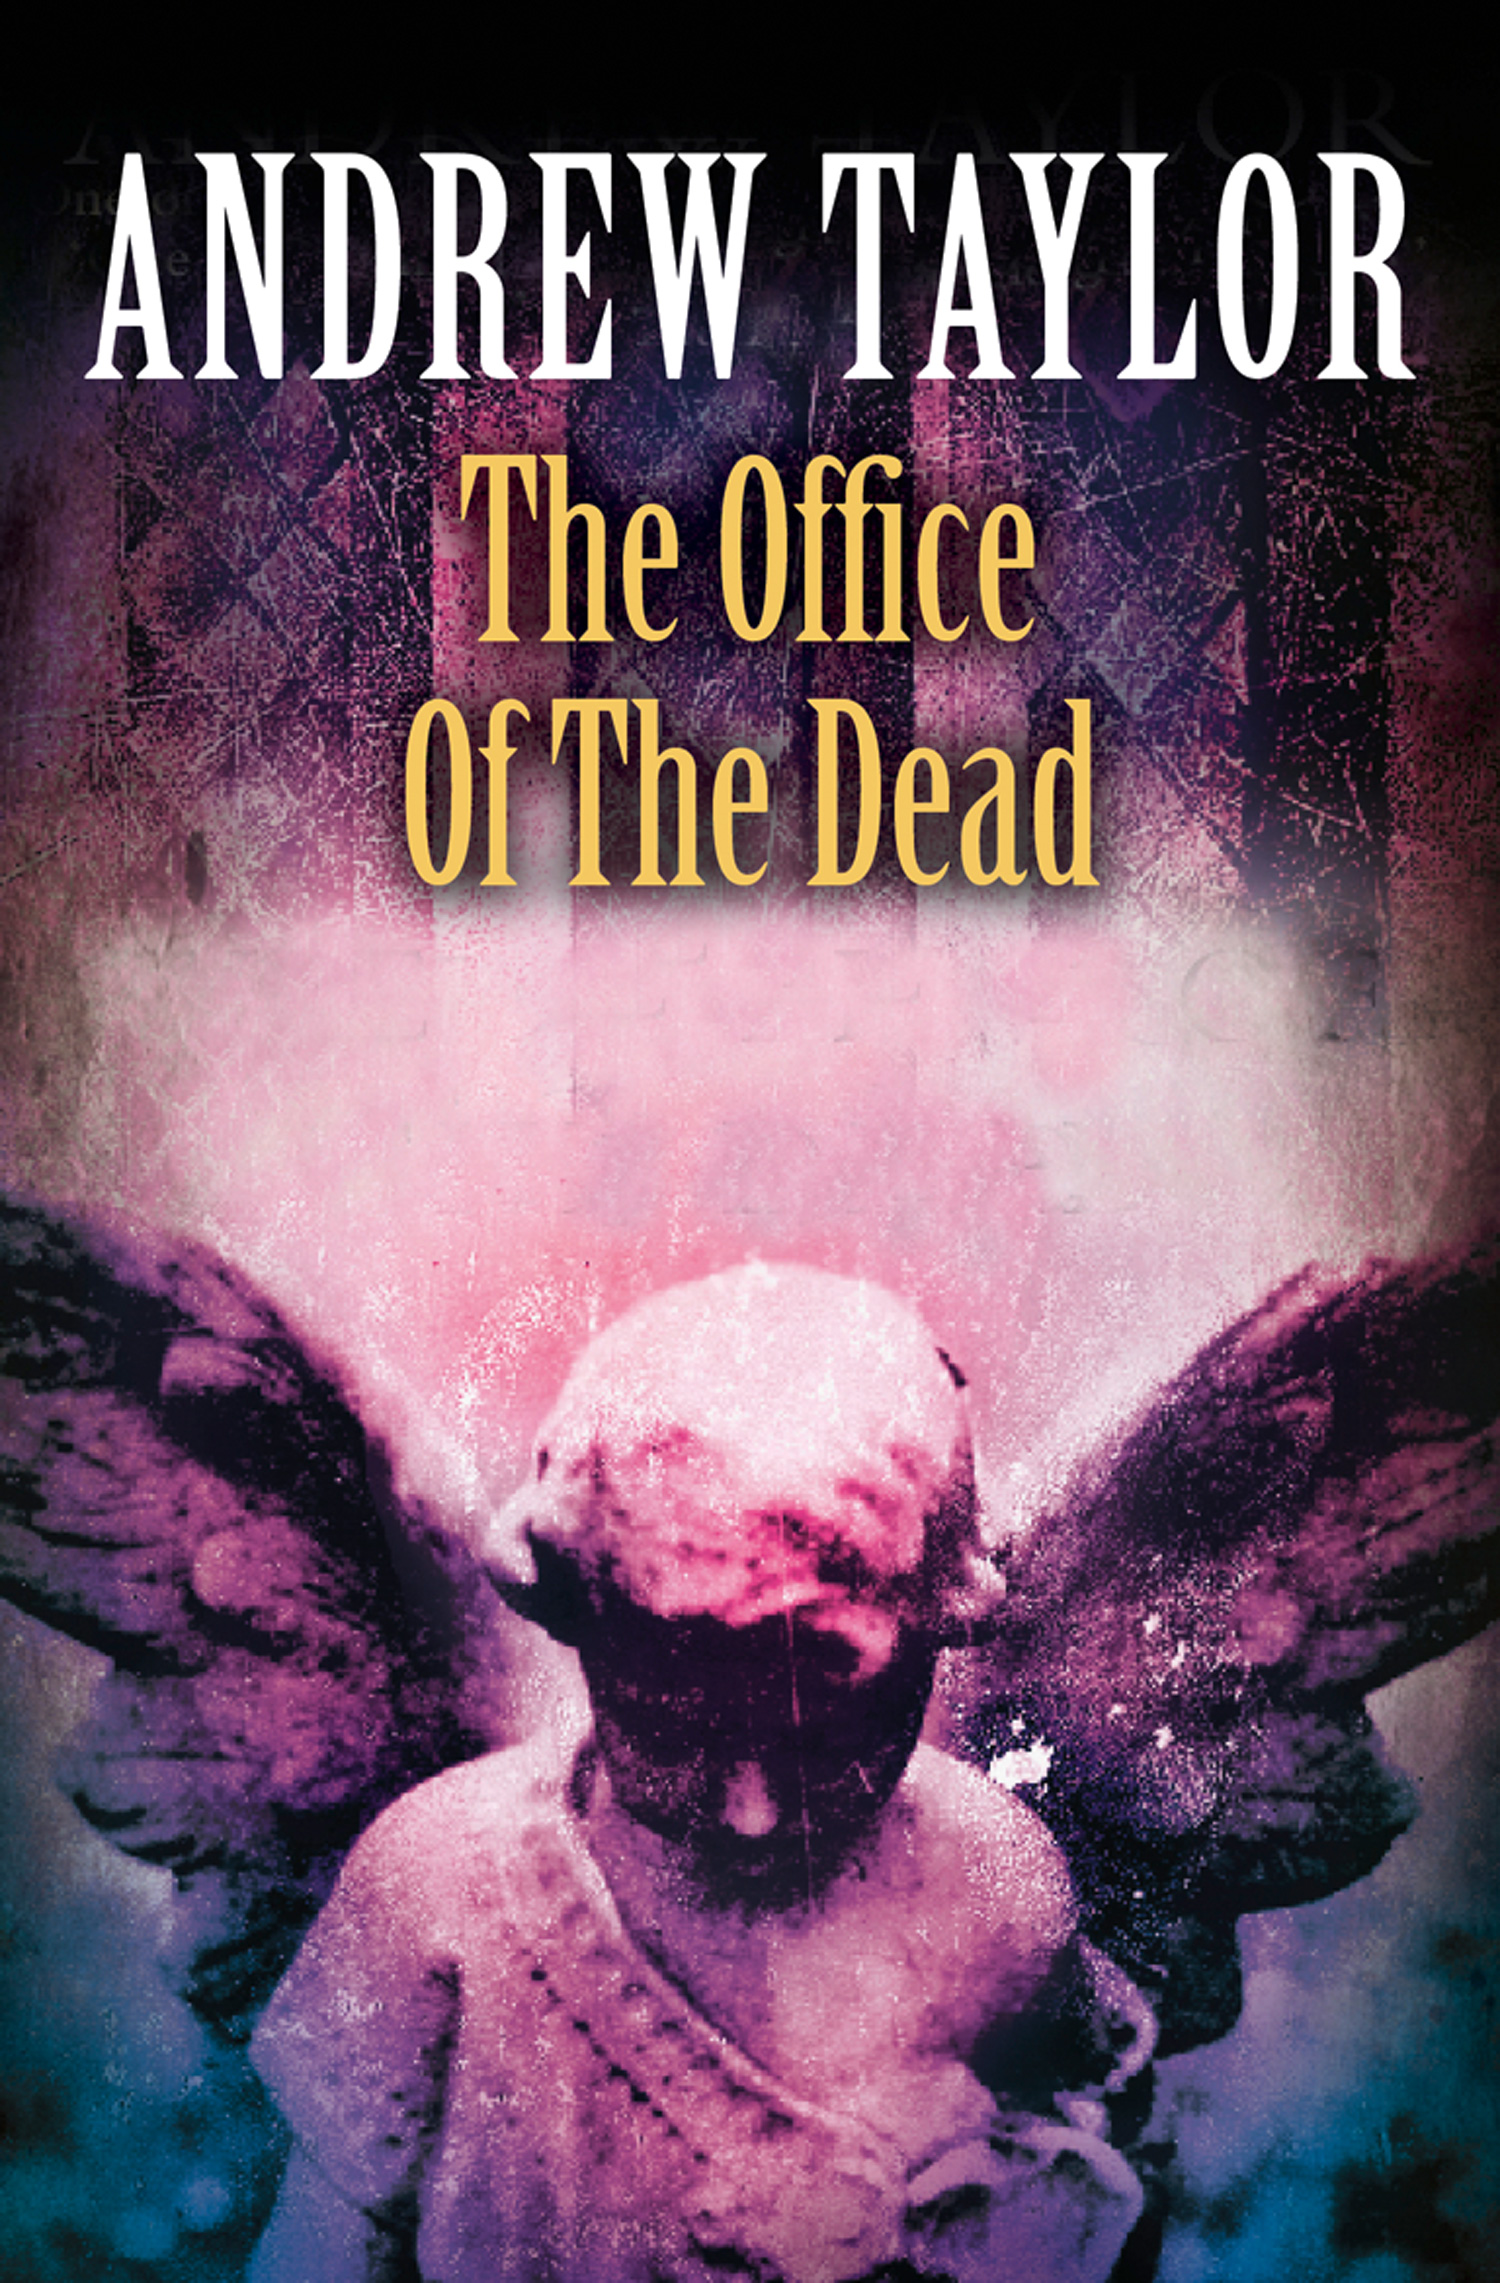 The Office of the Dead